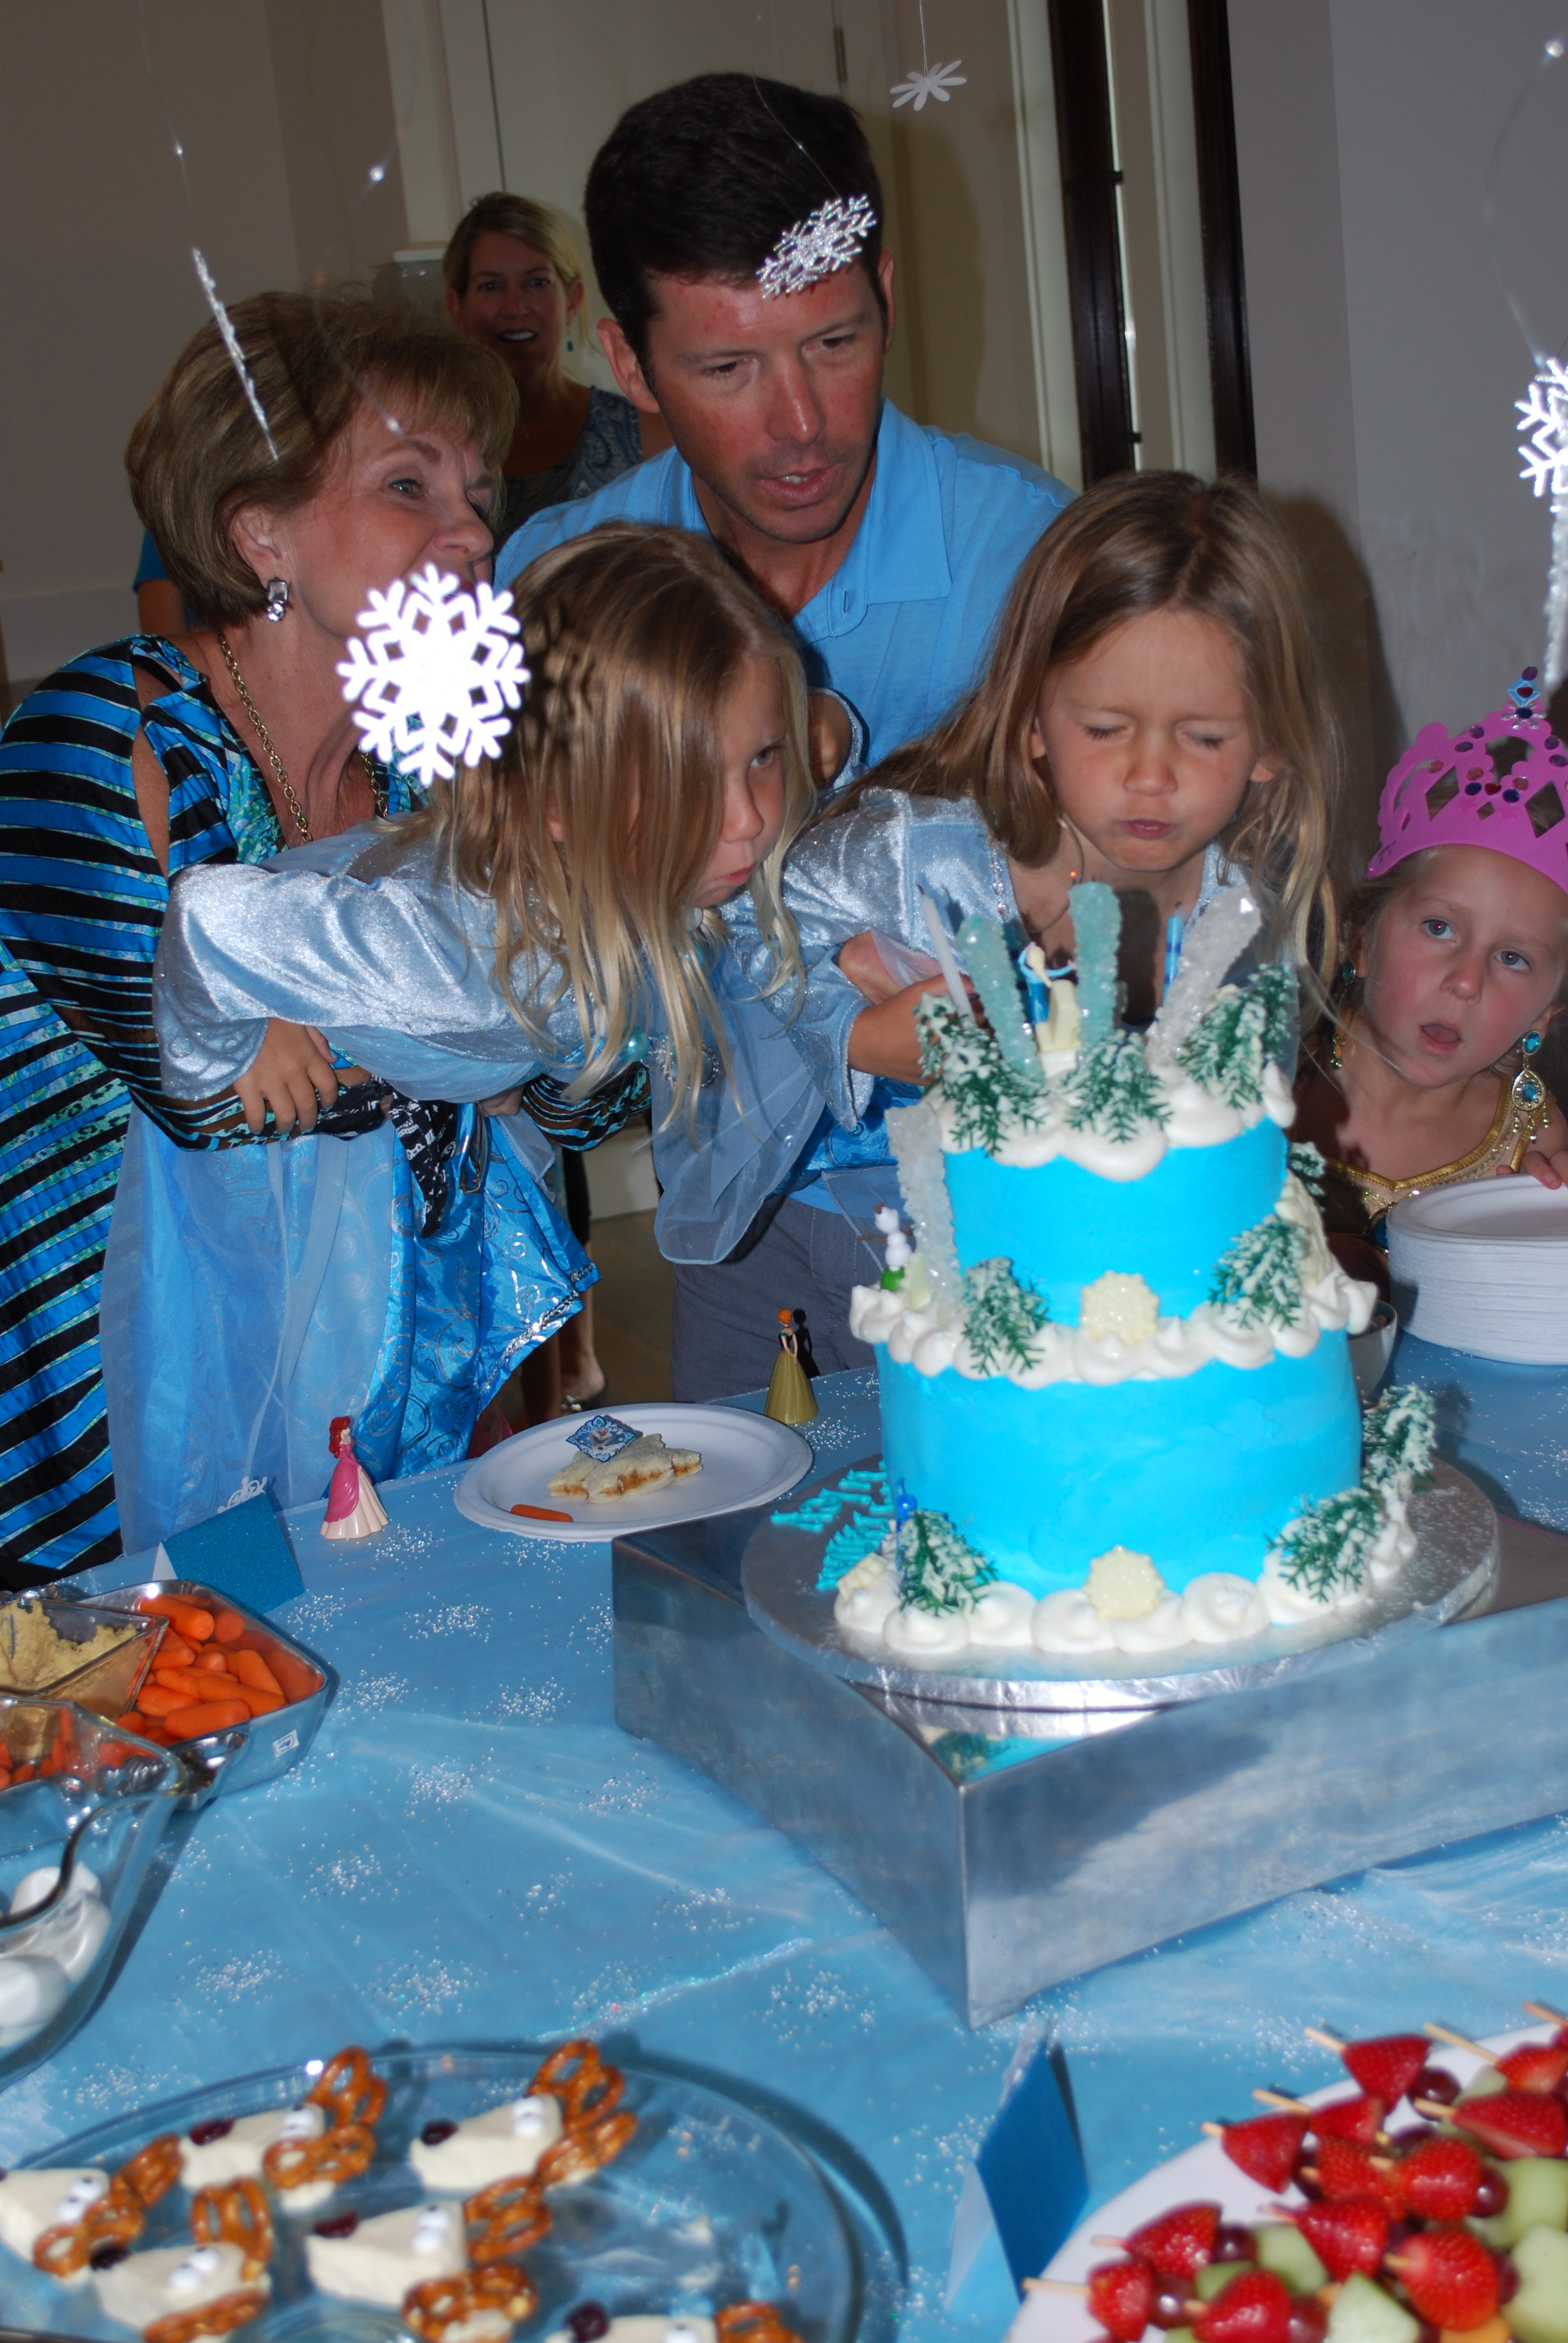 Blowing out the candles. Look at Cooper's face!! She's wishing hard --- LOVE!